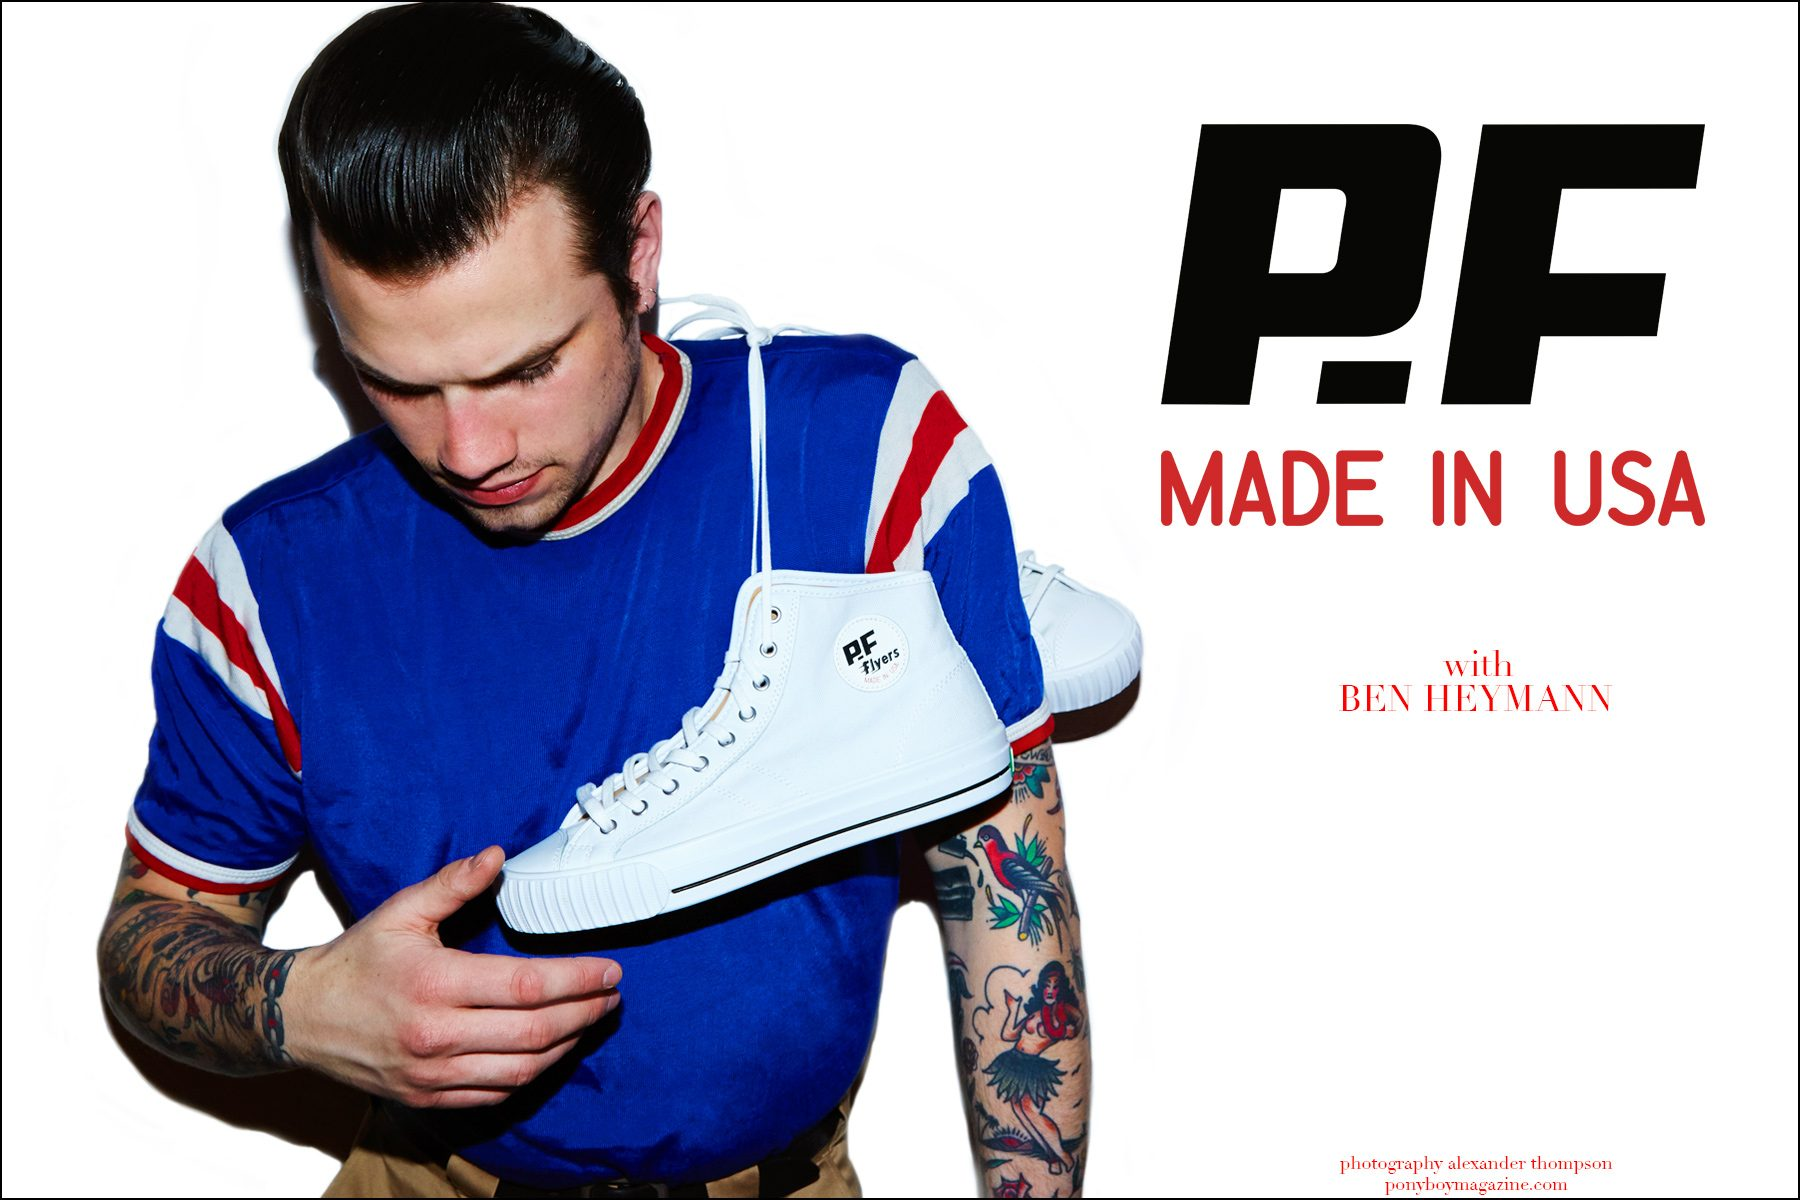 Rockabilly drummer Ben Heymann photographed in PF Flyers Made in USA line by Alexander Thompson for Ponyboy magazine NY.